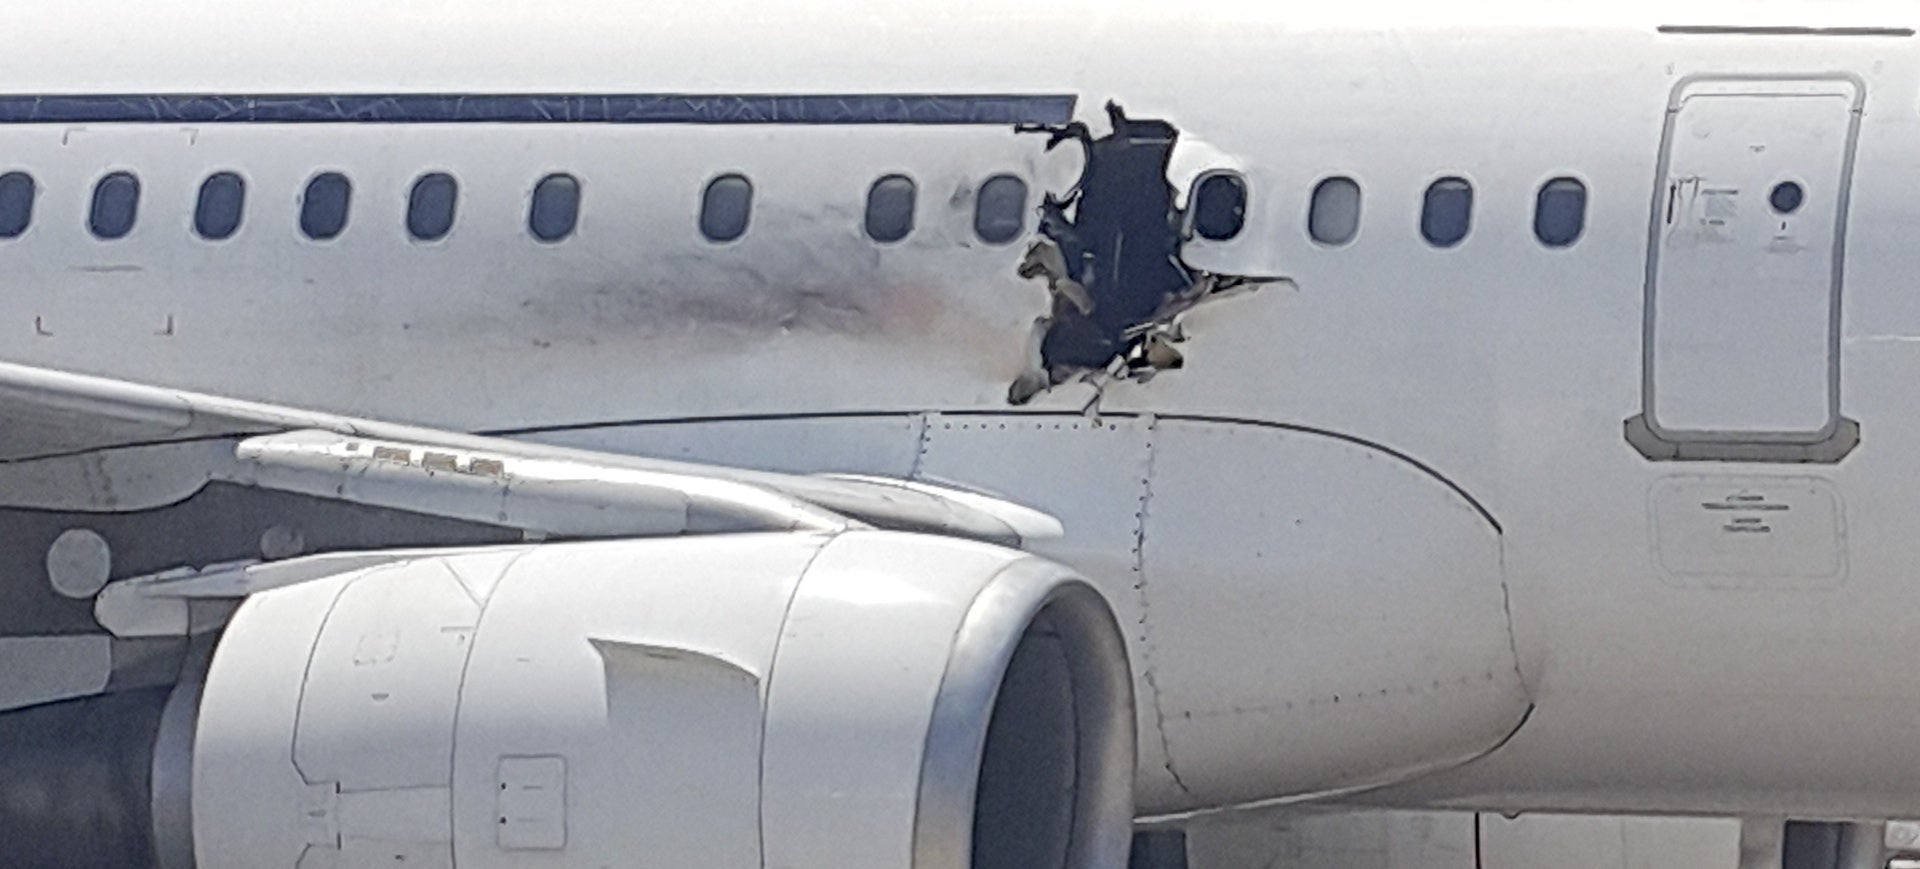 Aeroplane Makes Safe Landing Despite Having Huge Hole Blown in Fuselage